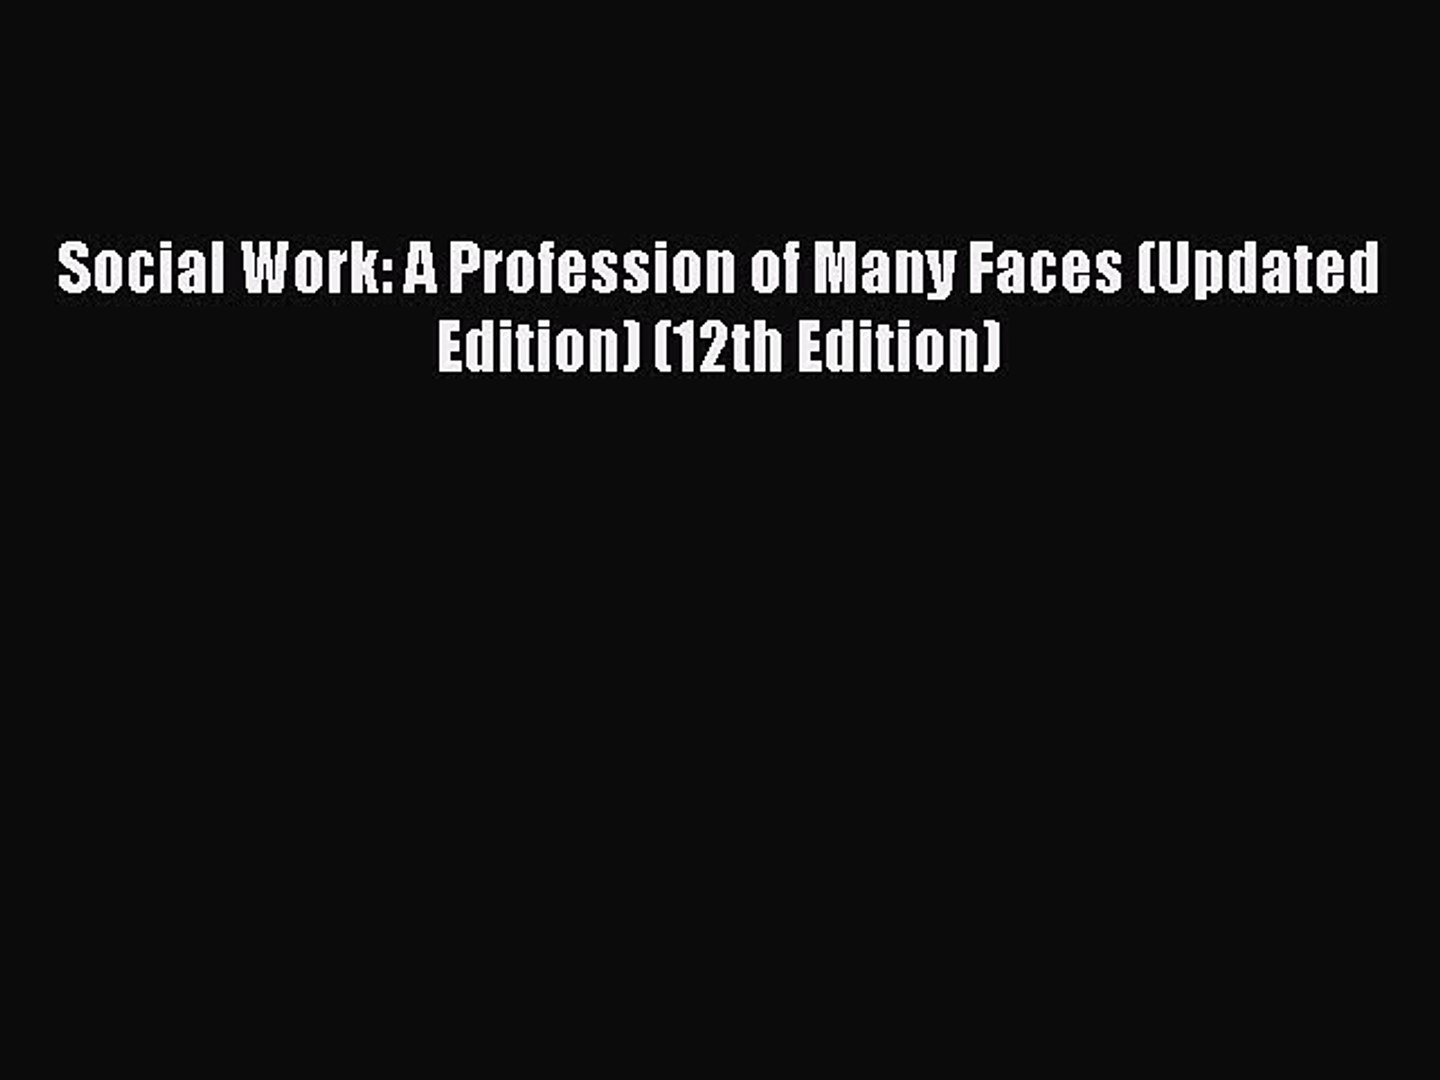 Download Social Work: A Profession of Many Faces (Updated Edition) (12th Edition)  Read Online